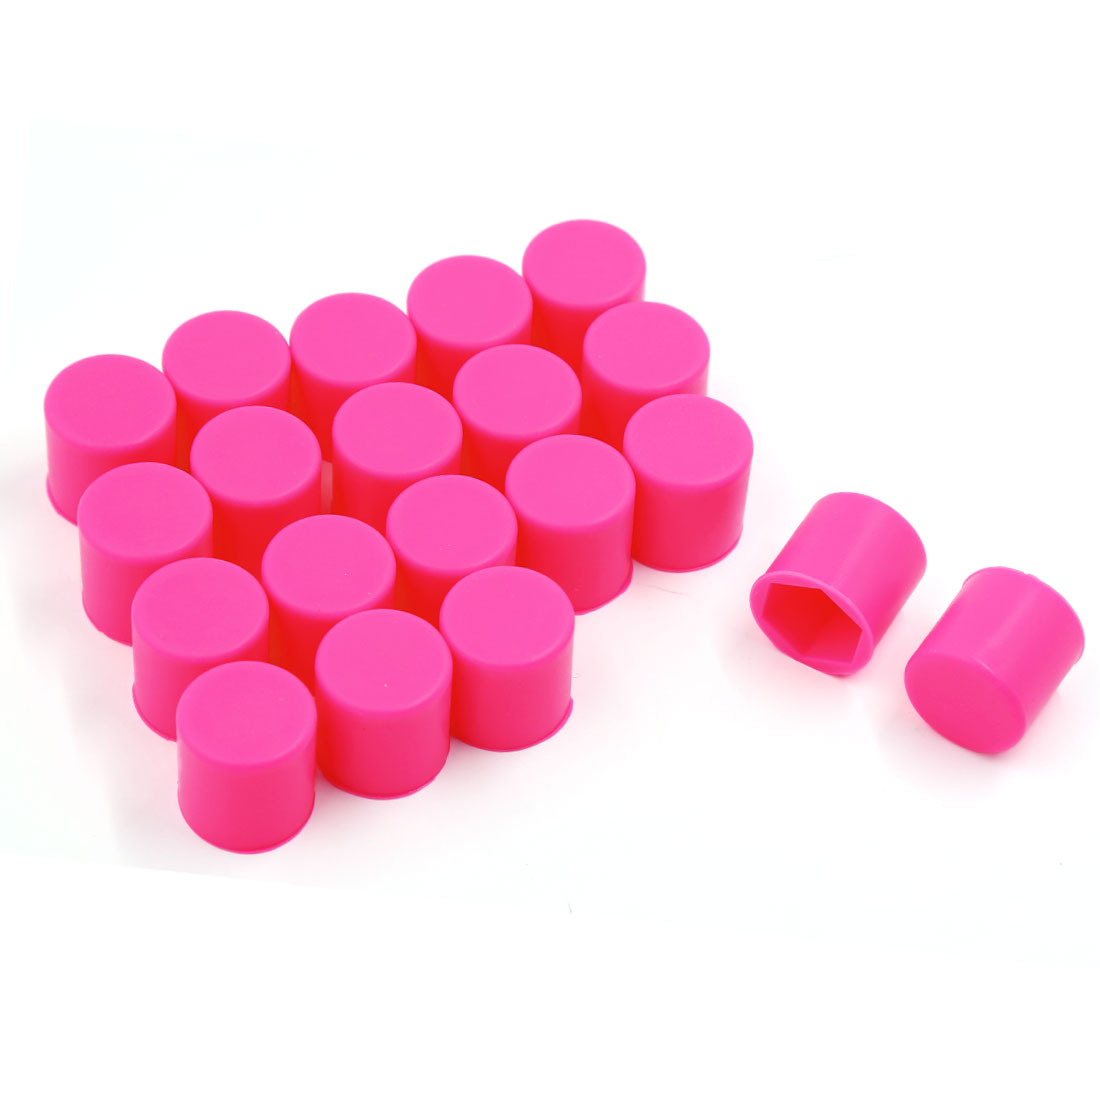 20 Pcs Universal Fuchsia Car Wheel Nut Bolt Cover Tyre Screw Protective Cap 19mm